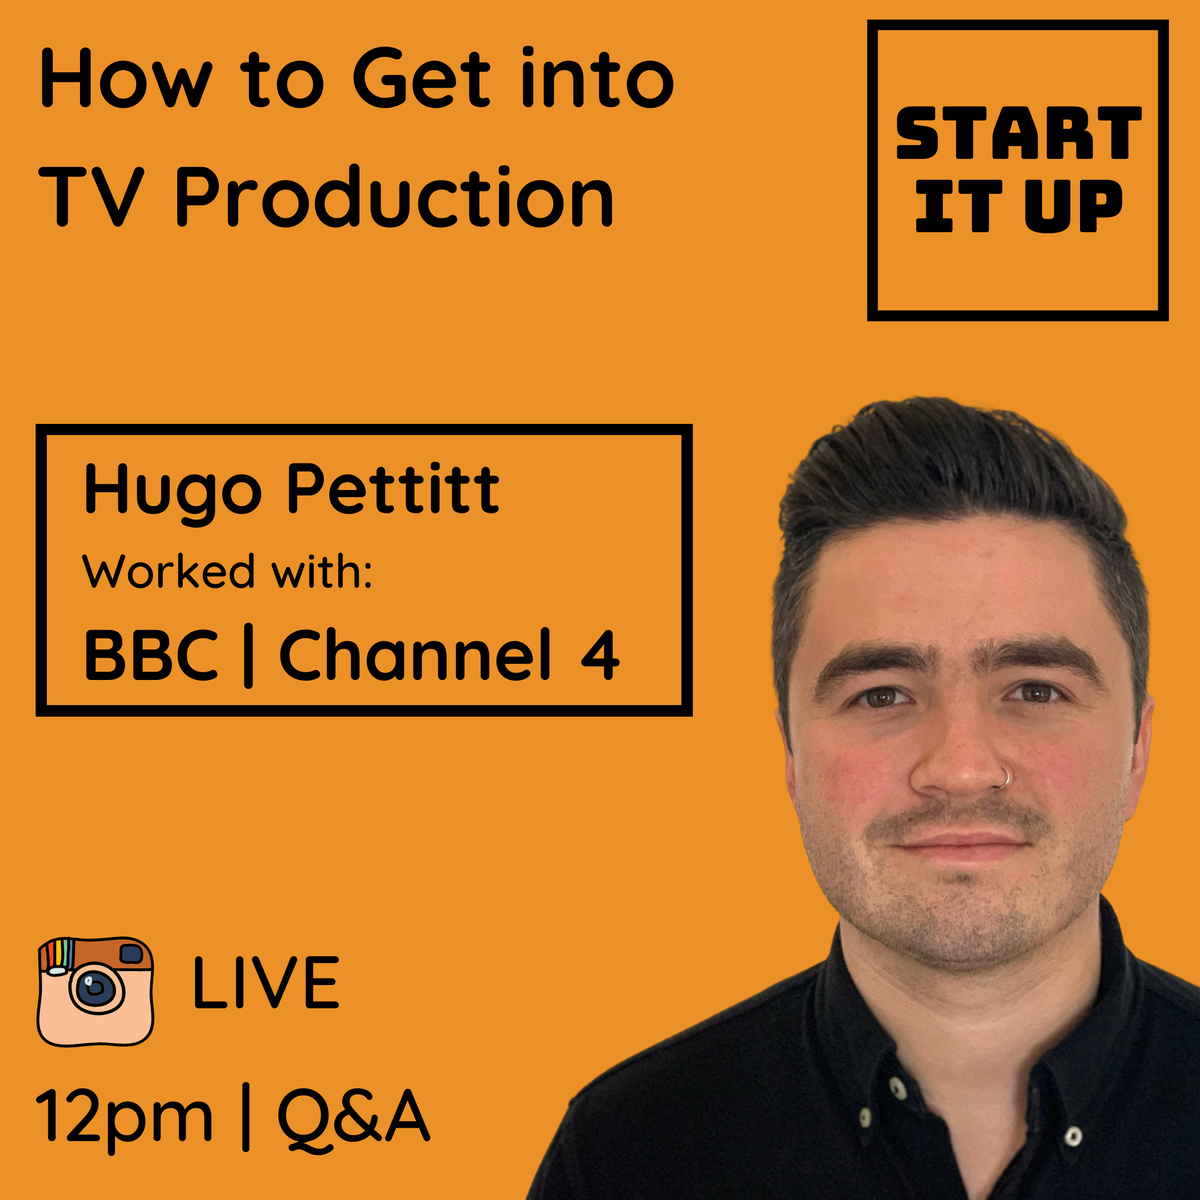 Love TV? Want to know how to make your favourite shows? We're just 15 MINUTES AWAY from a LIVE Q&A on 'How to Get into TV Production' TODAY at 12pm, with award-winning documentary producer, Hugo Pettitt!   Join us on Instagram LIVE! (@babbasahub)  #beyondcovid #emergestronger https://t.co/wBzgEbKifA